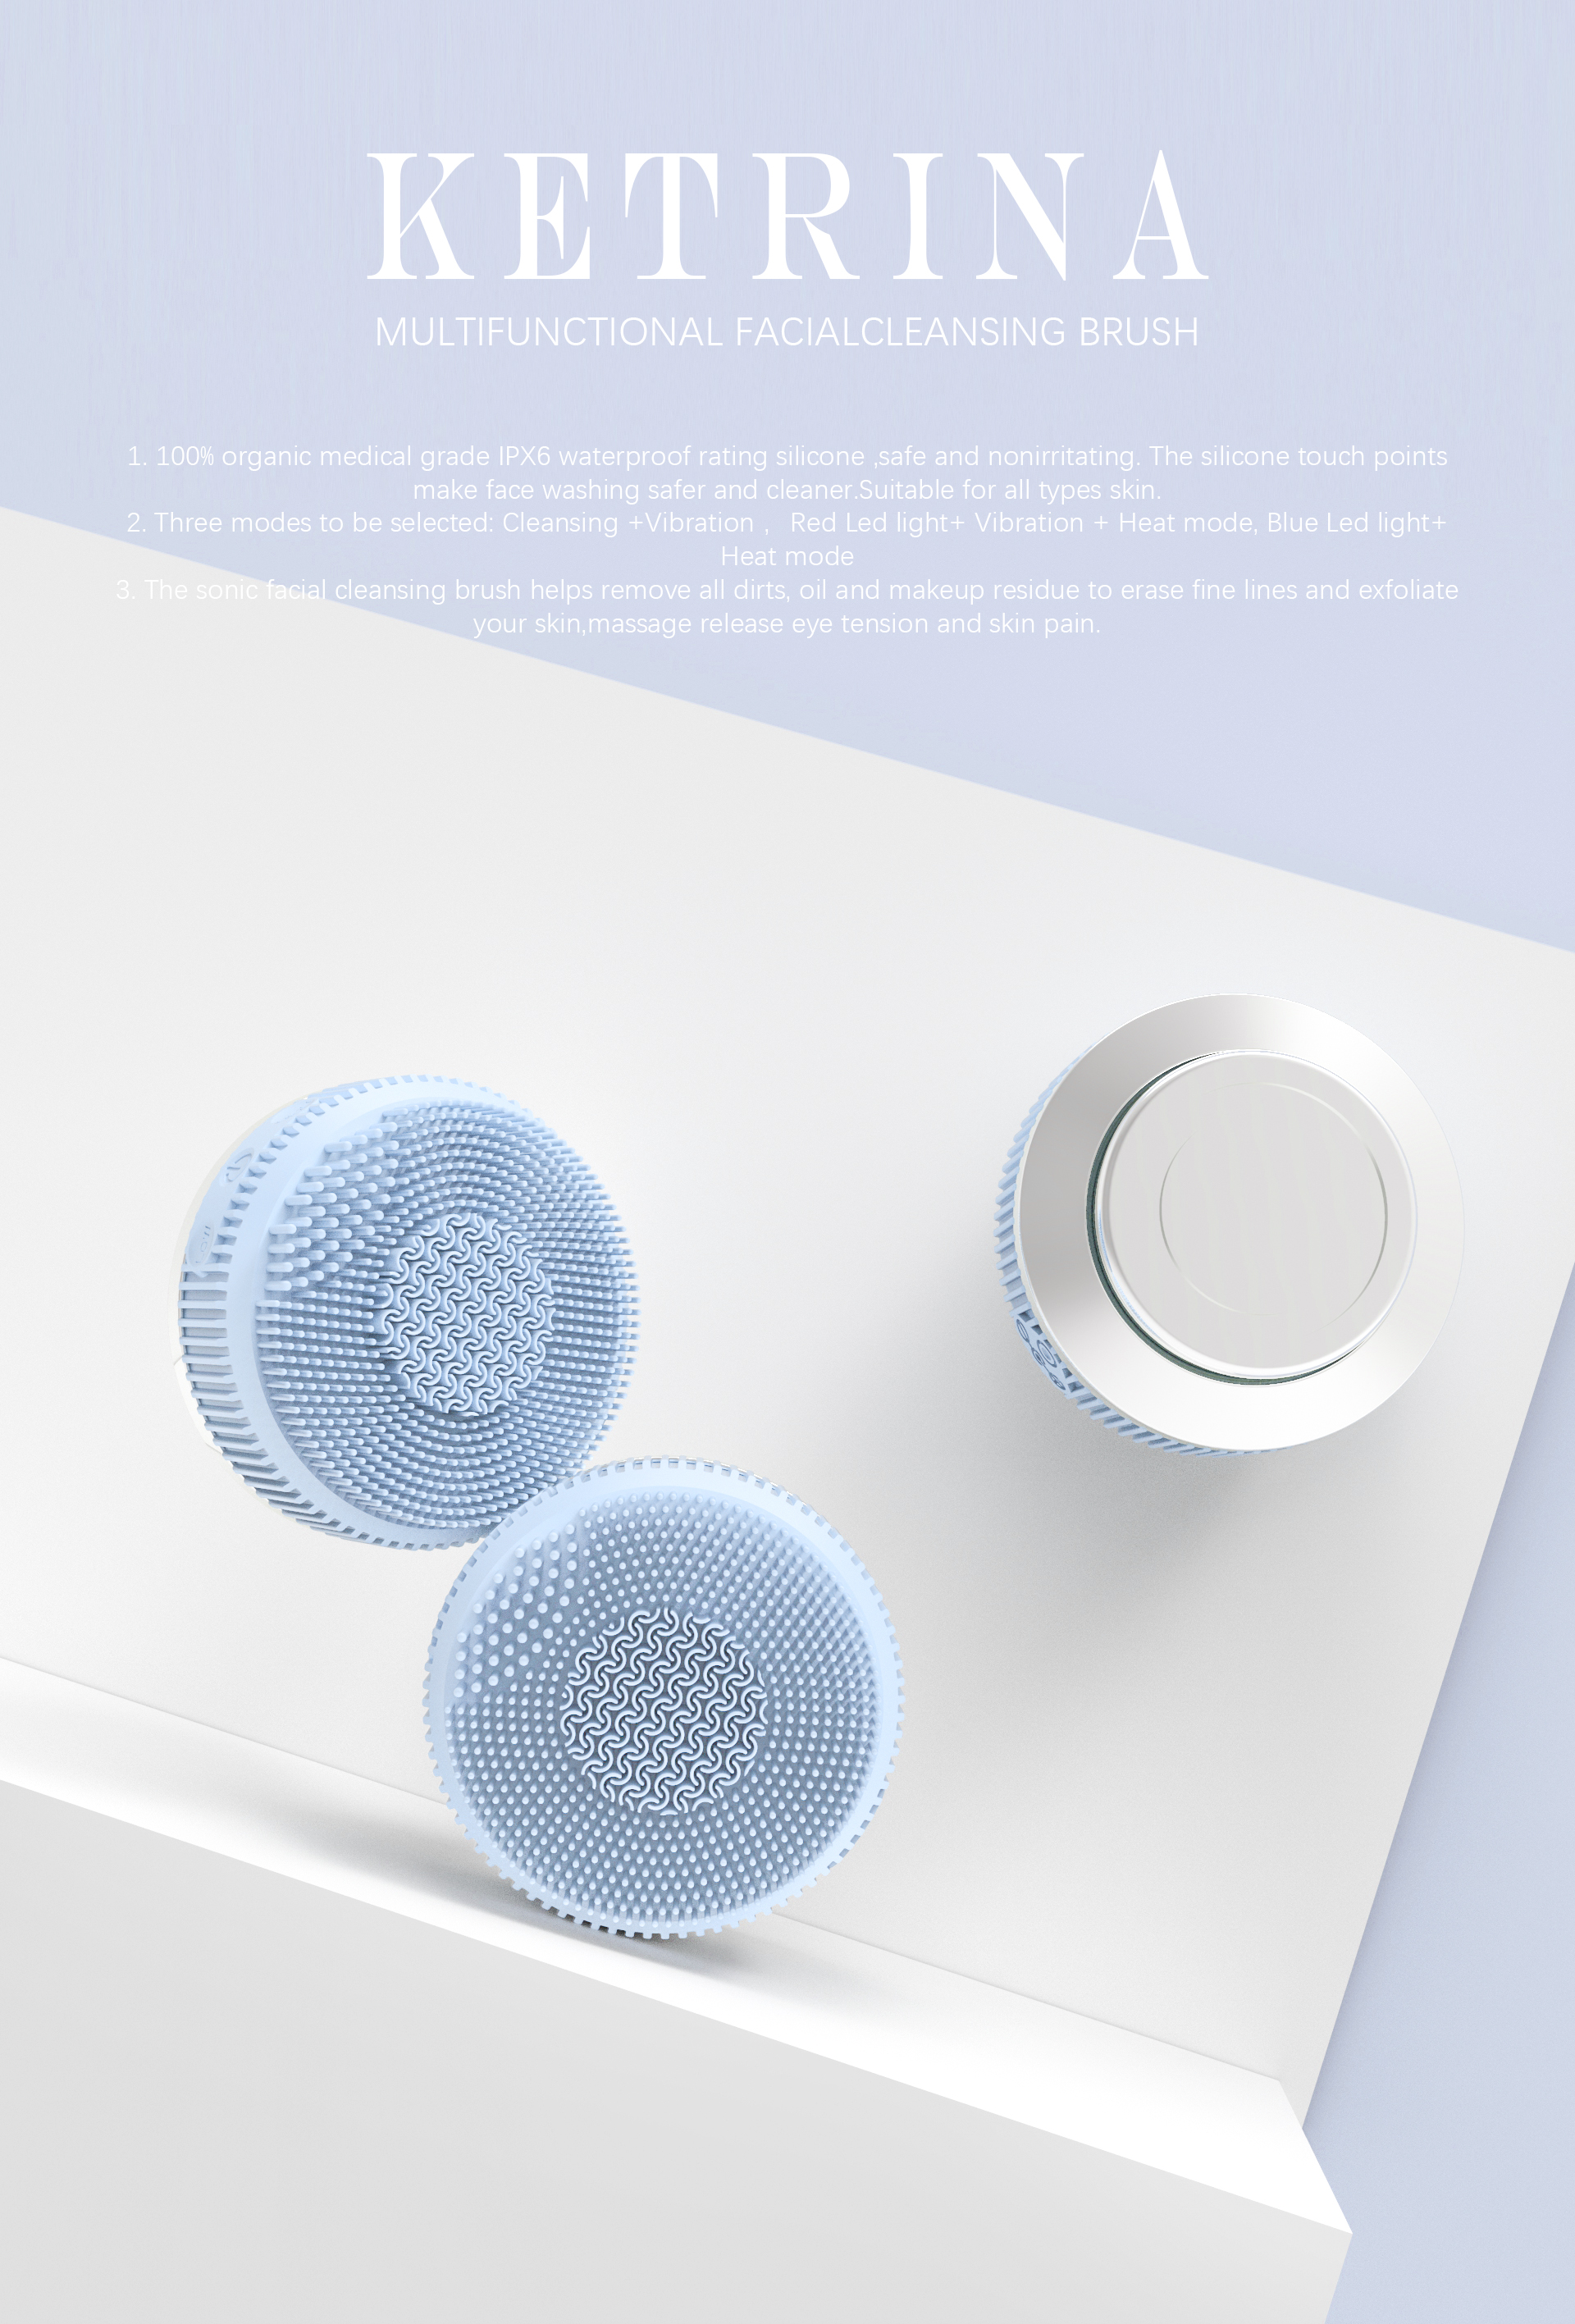 Face Brush Facial Cleansing Electric Featured Image